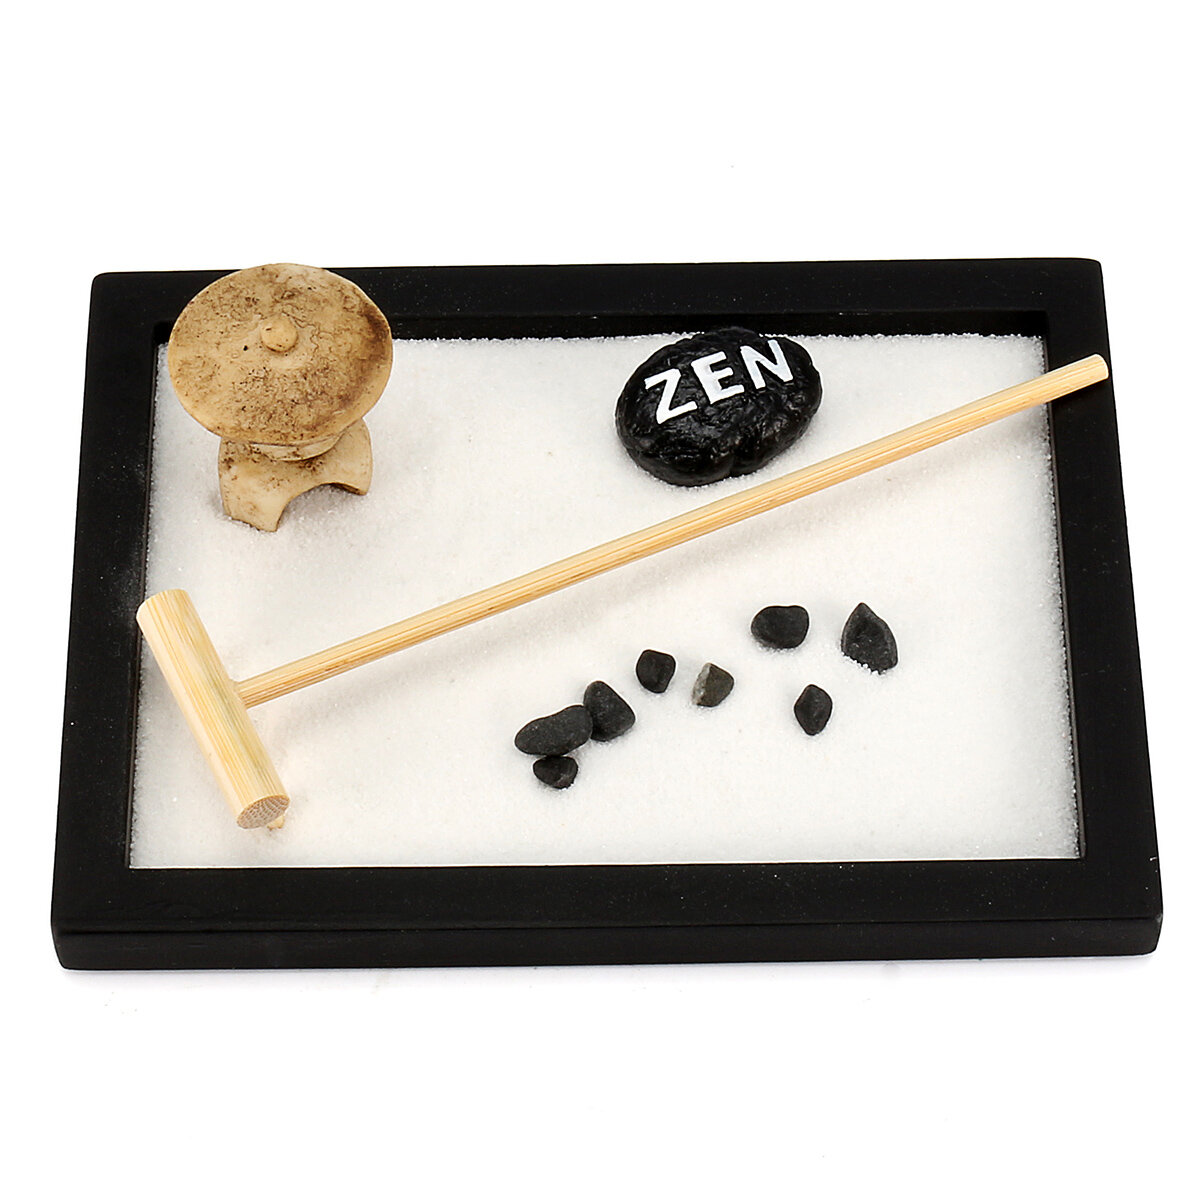 Feng Shui Büro Mini Relax Peace Meditation Kit Yoga Office Feng Shui Sand Pebble Rack Table Top Decor Gift